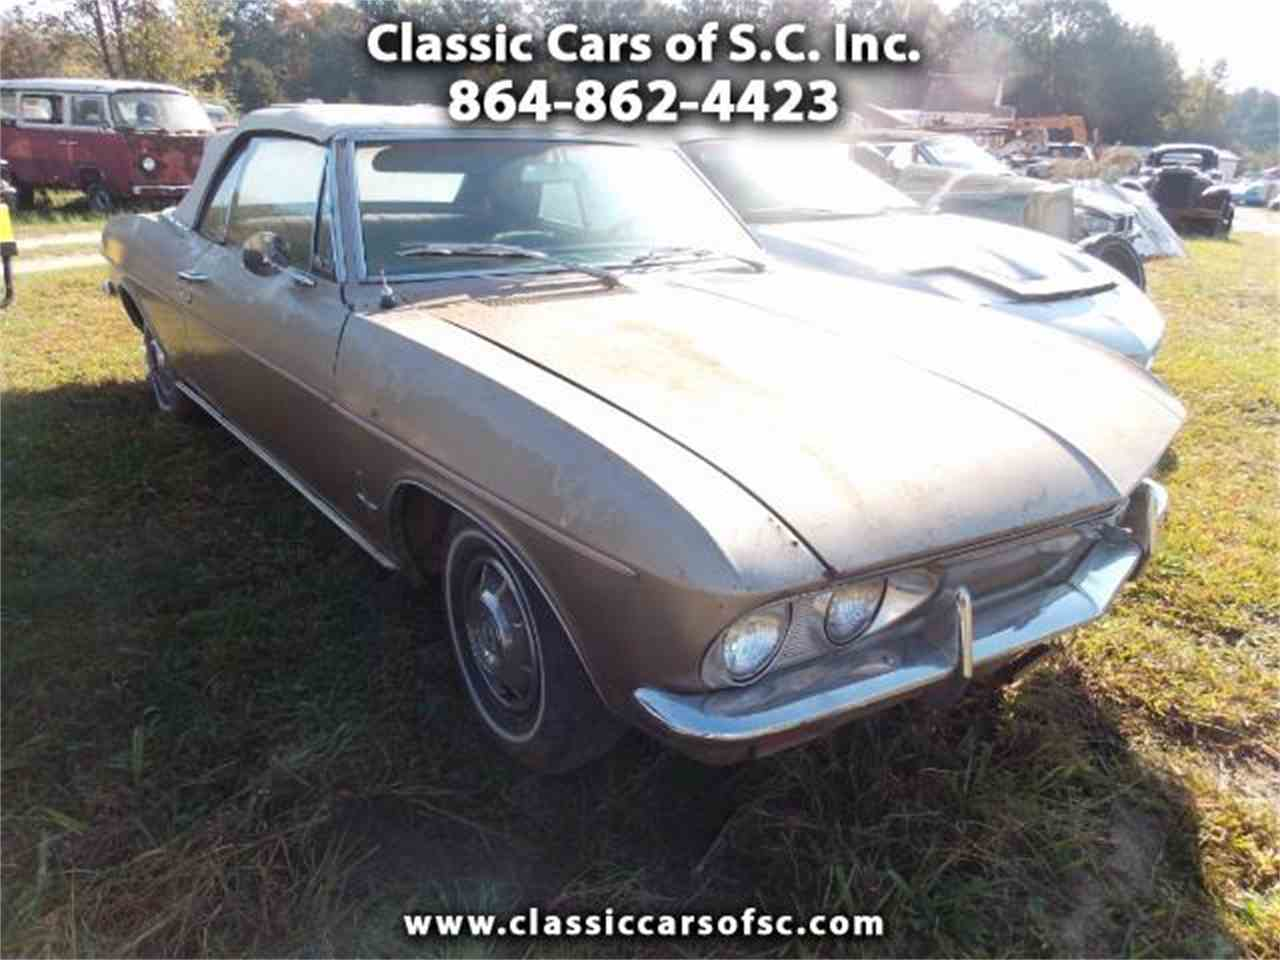 Large Picture of 1967 Chevrolet Corvair Monza - $5,000.00 - MA3X